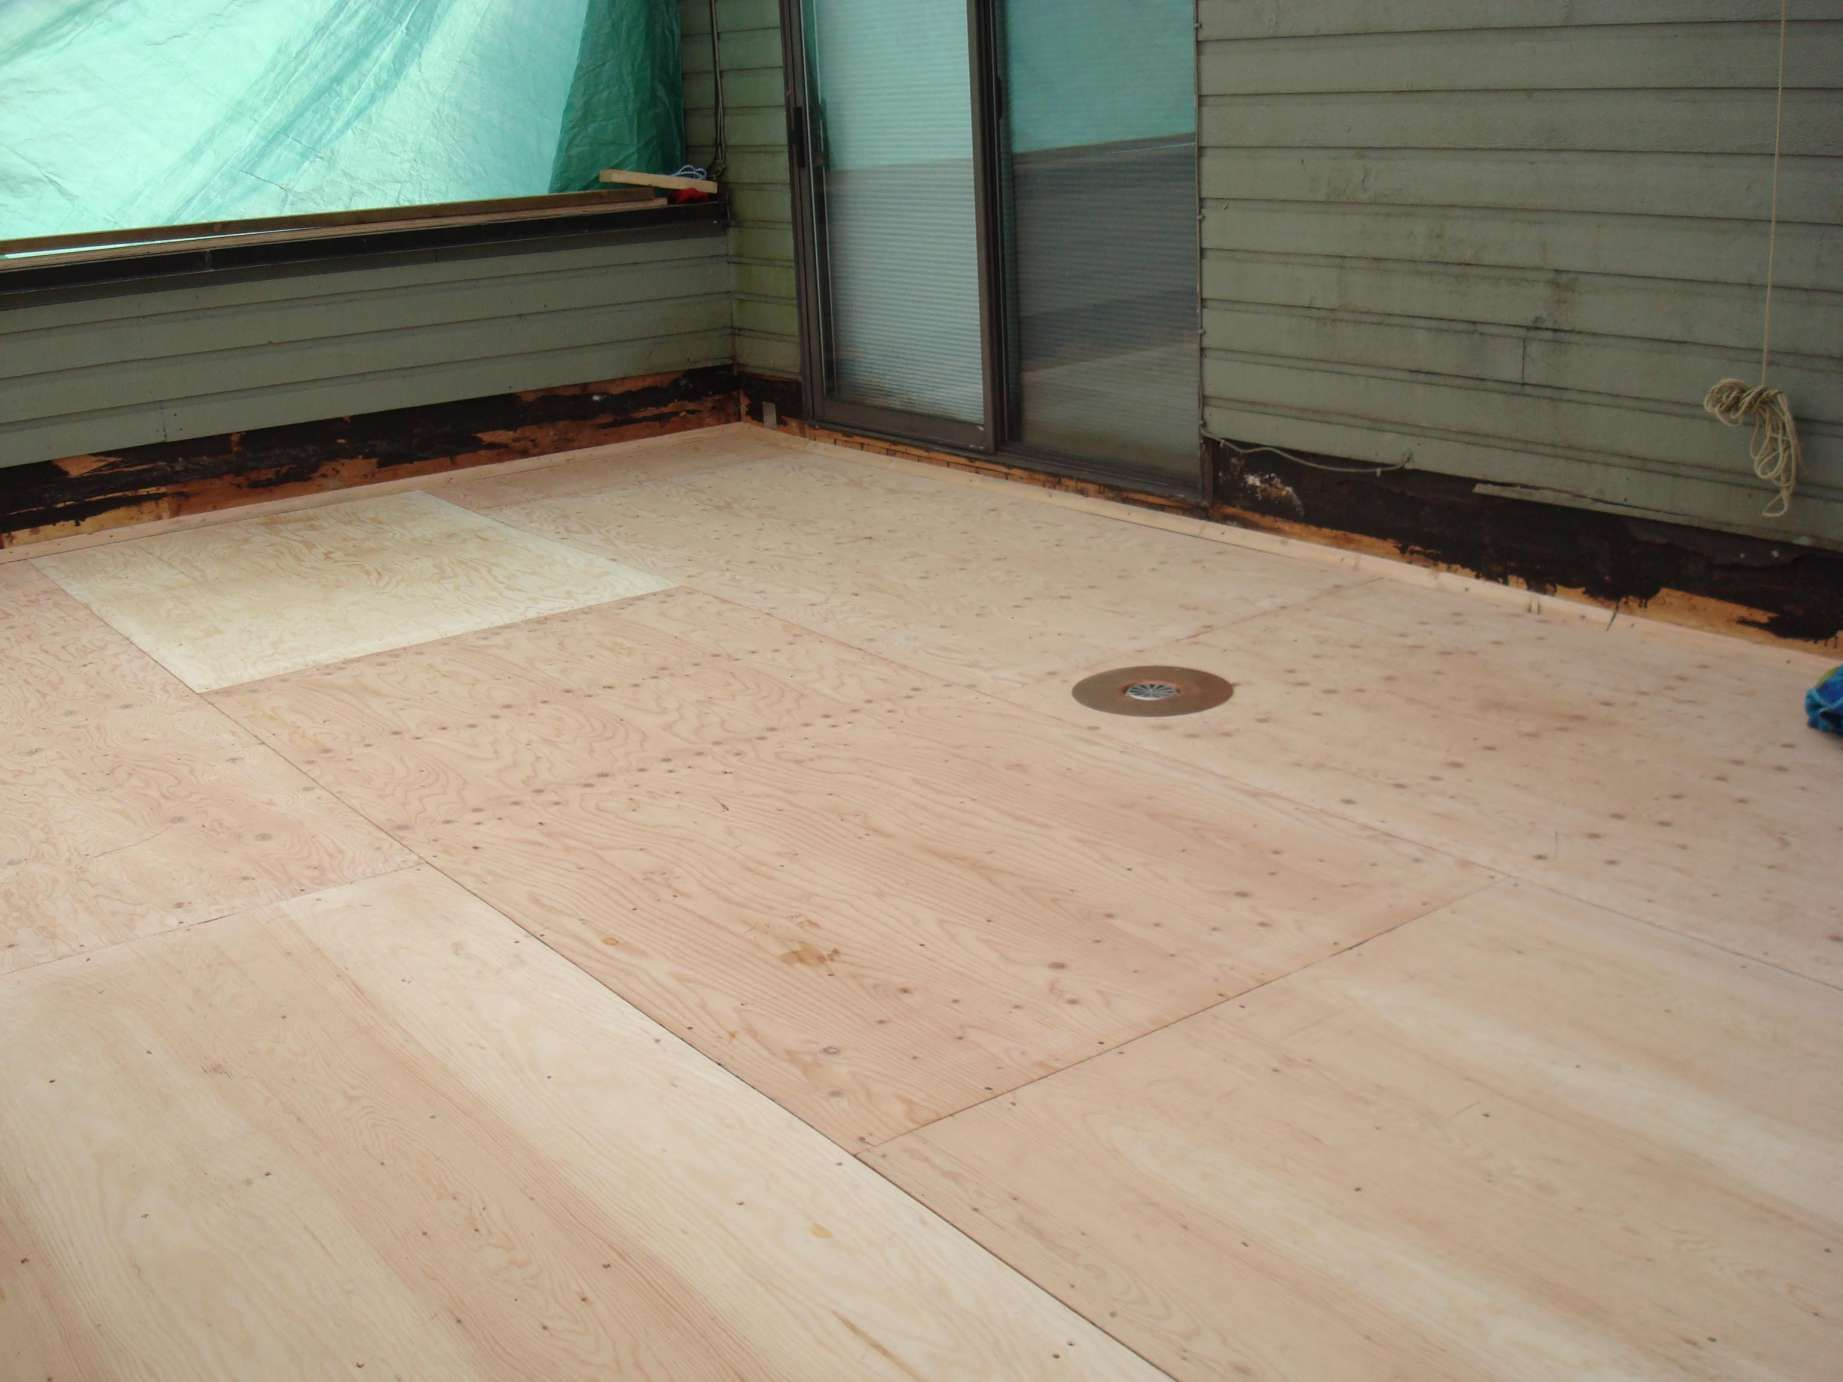 12 amazing waterproof deck coating for plywood photos